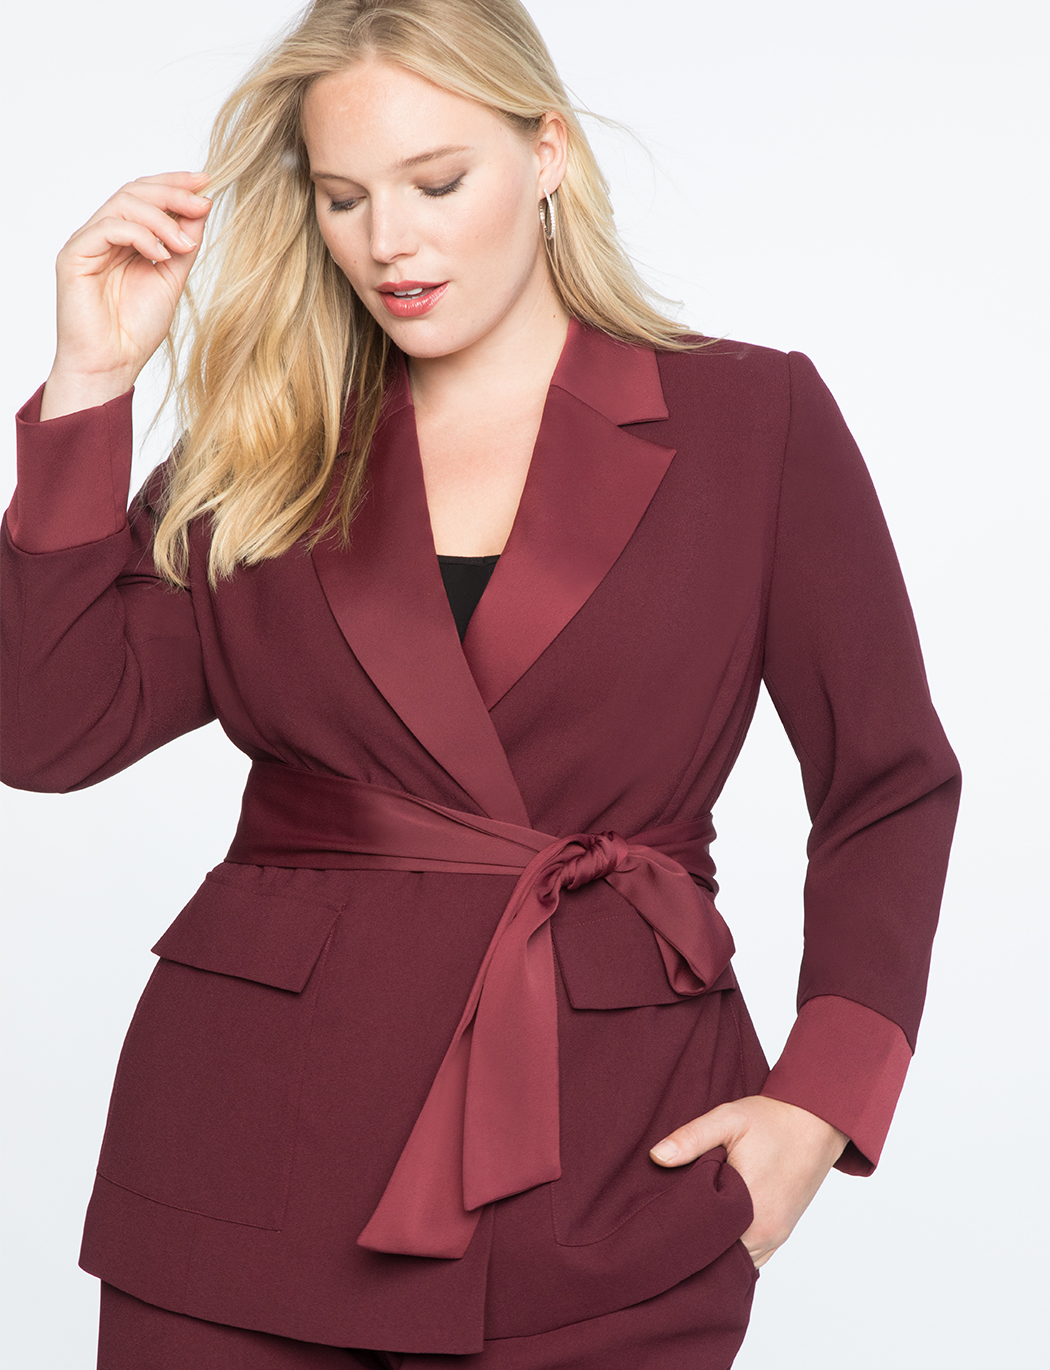 Satin Trimmed Robe Blazer   $69.90